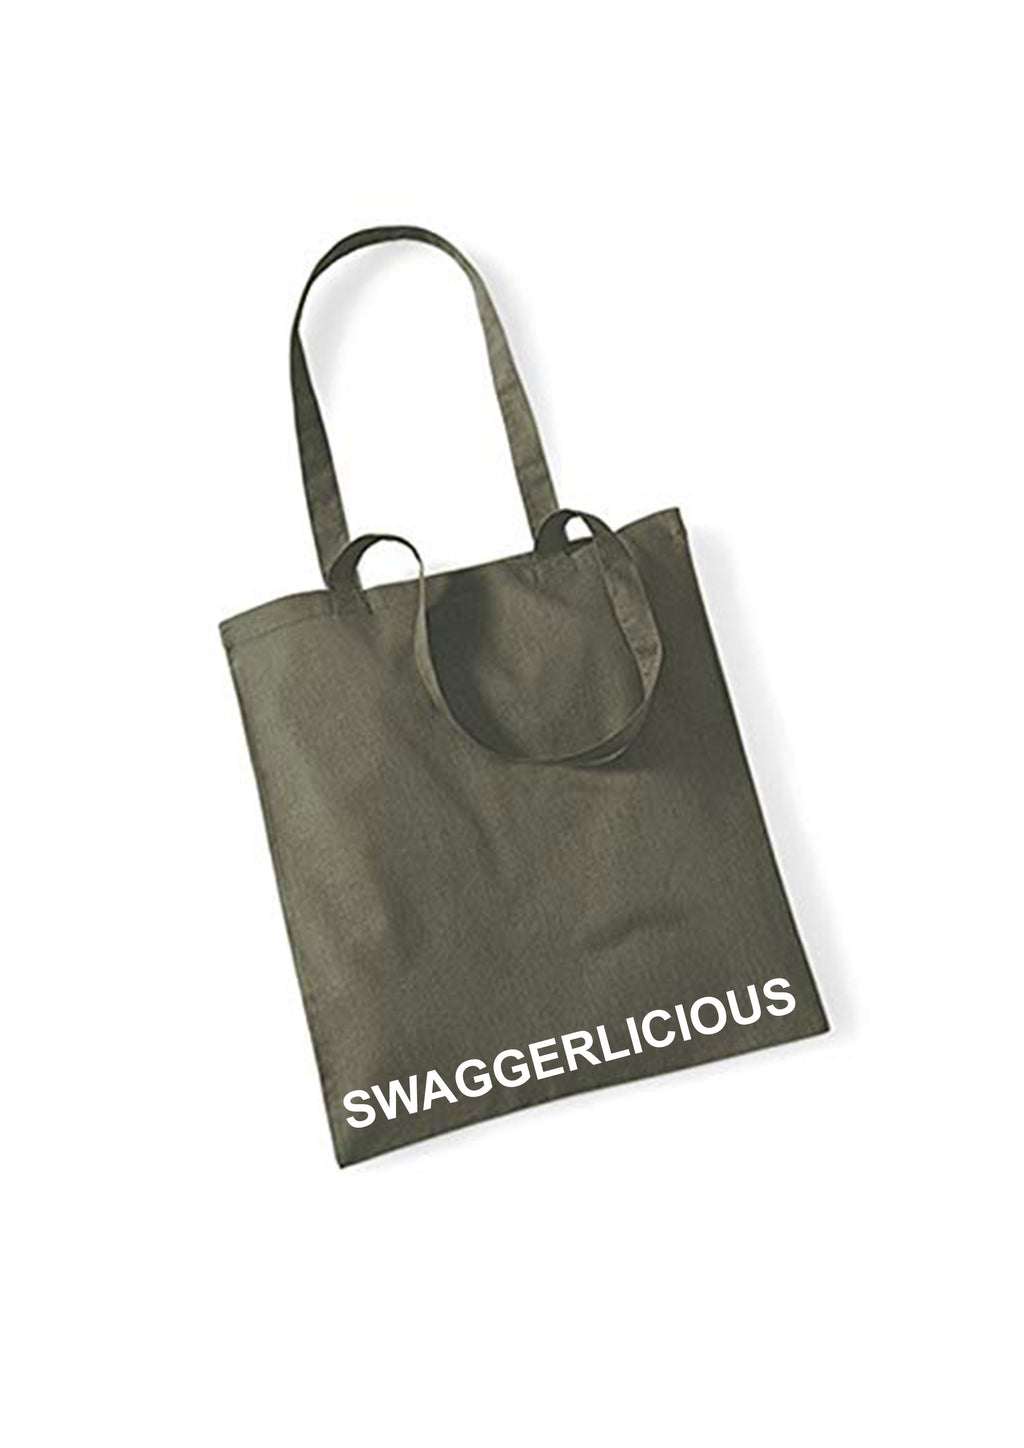 OLIVE GREEN SWAGGERLICIOUS TOTE BAG - swaggerlicious-clothing.com